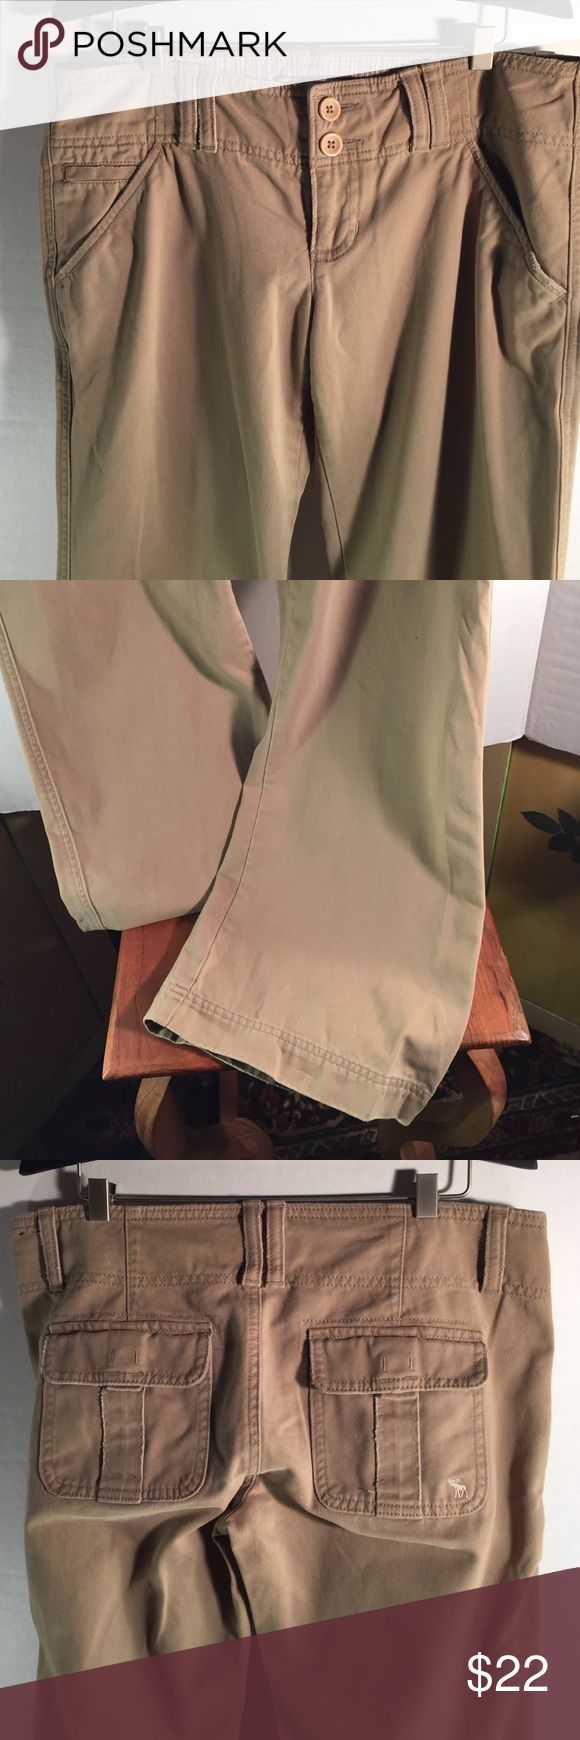 Abercrombie and fitch kaki pants Great condition flare leg with a destressed  feature. Only worn a few times. In Seam is 30 inches. 4P. Abercrombie & Fitch Pants Boot Cut & Flare